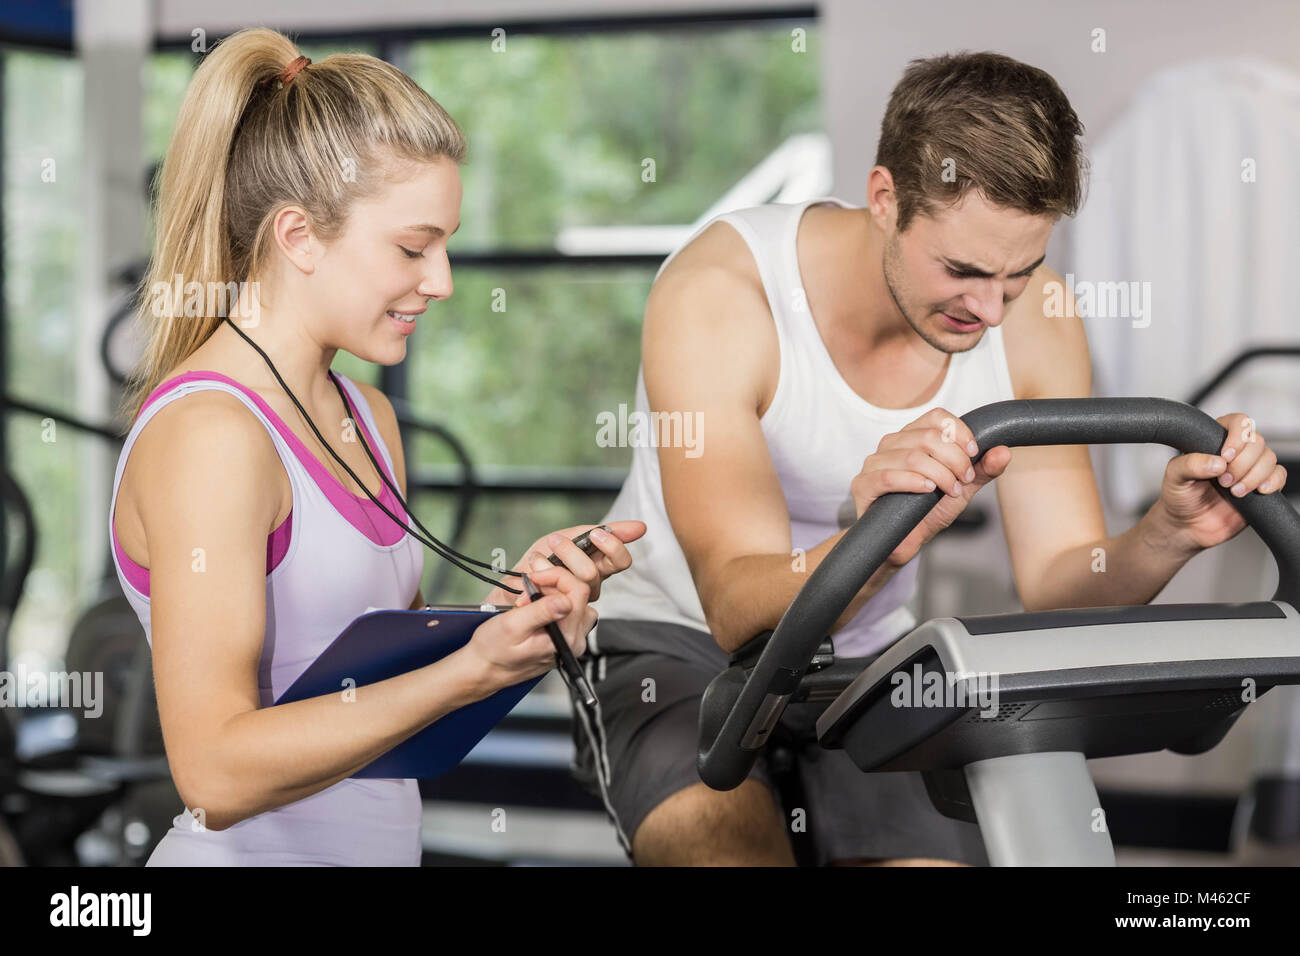 Trainer woman talking with a man doing exercise bike Stock Photo